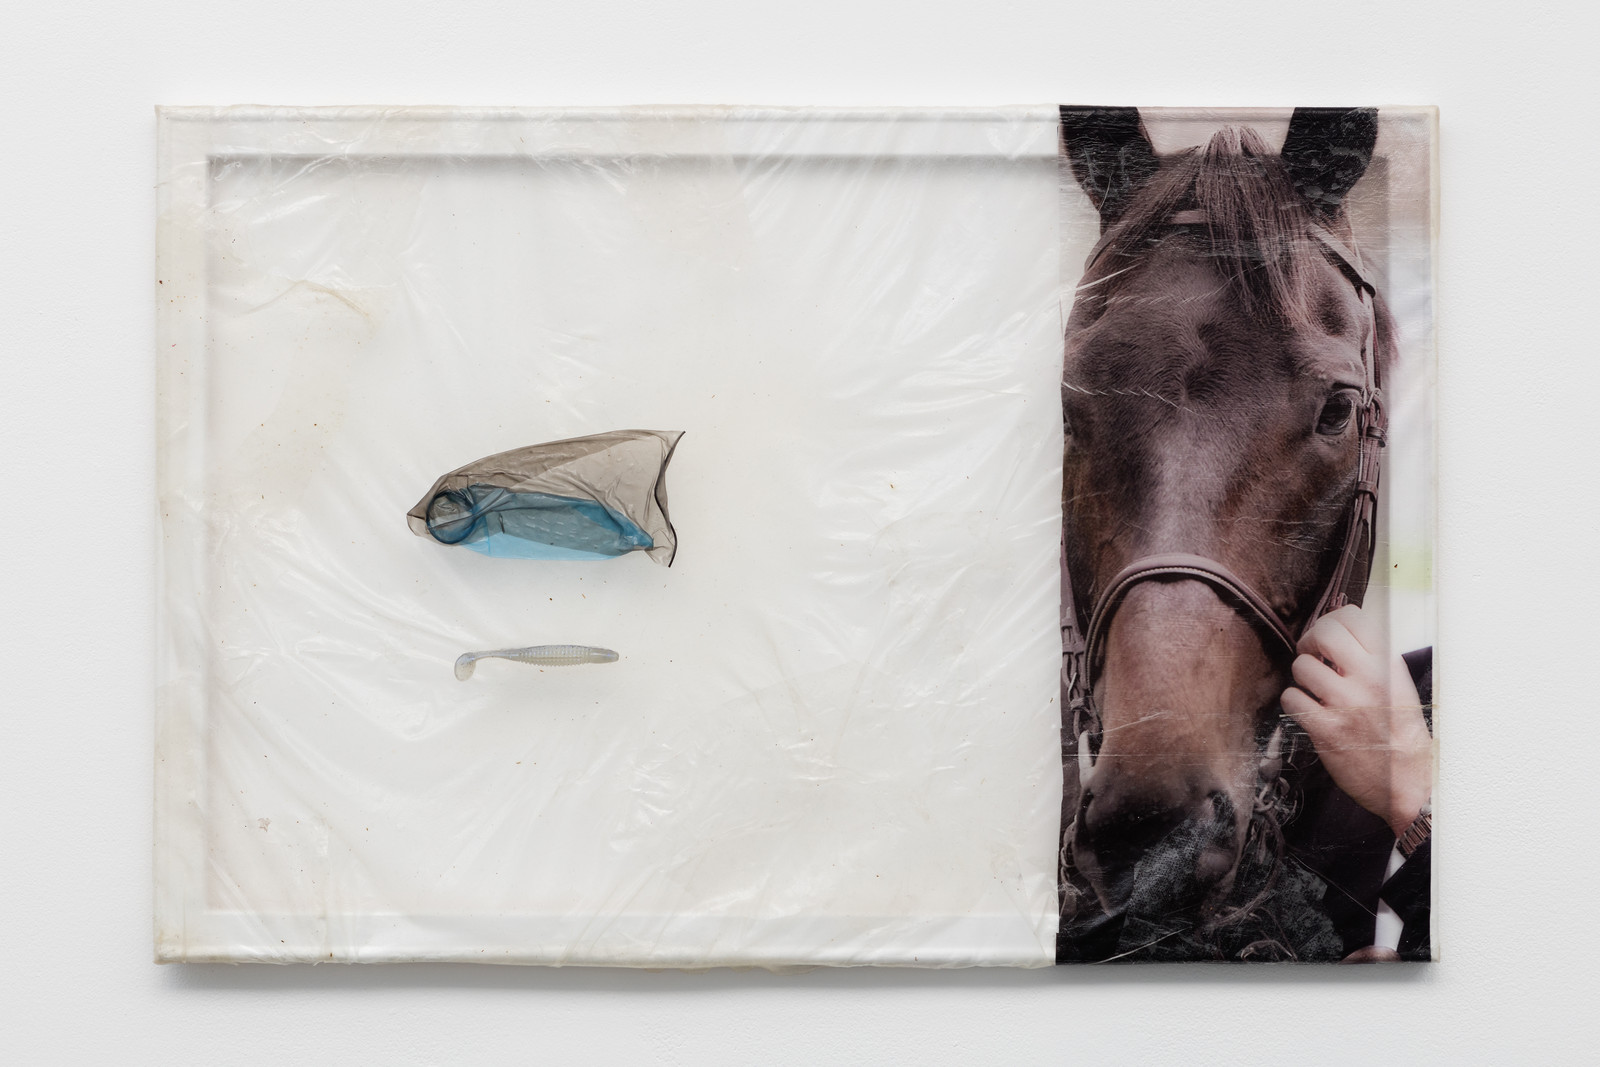 2.Aude Pariset. Stallion Dad, 2016. Bioplastic, UV print on bioplastic, condoms, fish bait, wood, paint. 60 x 90 cm